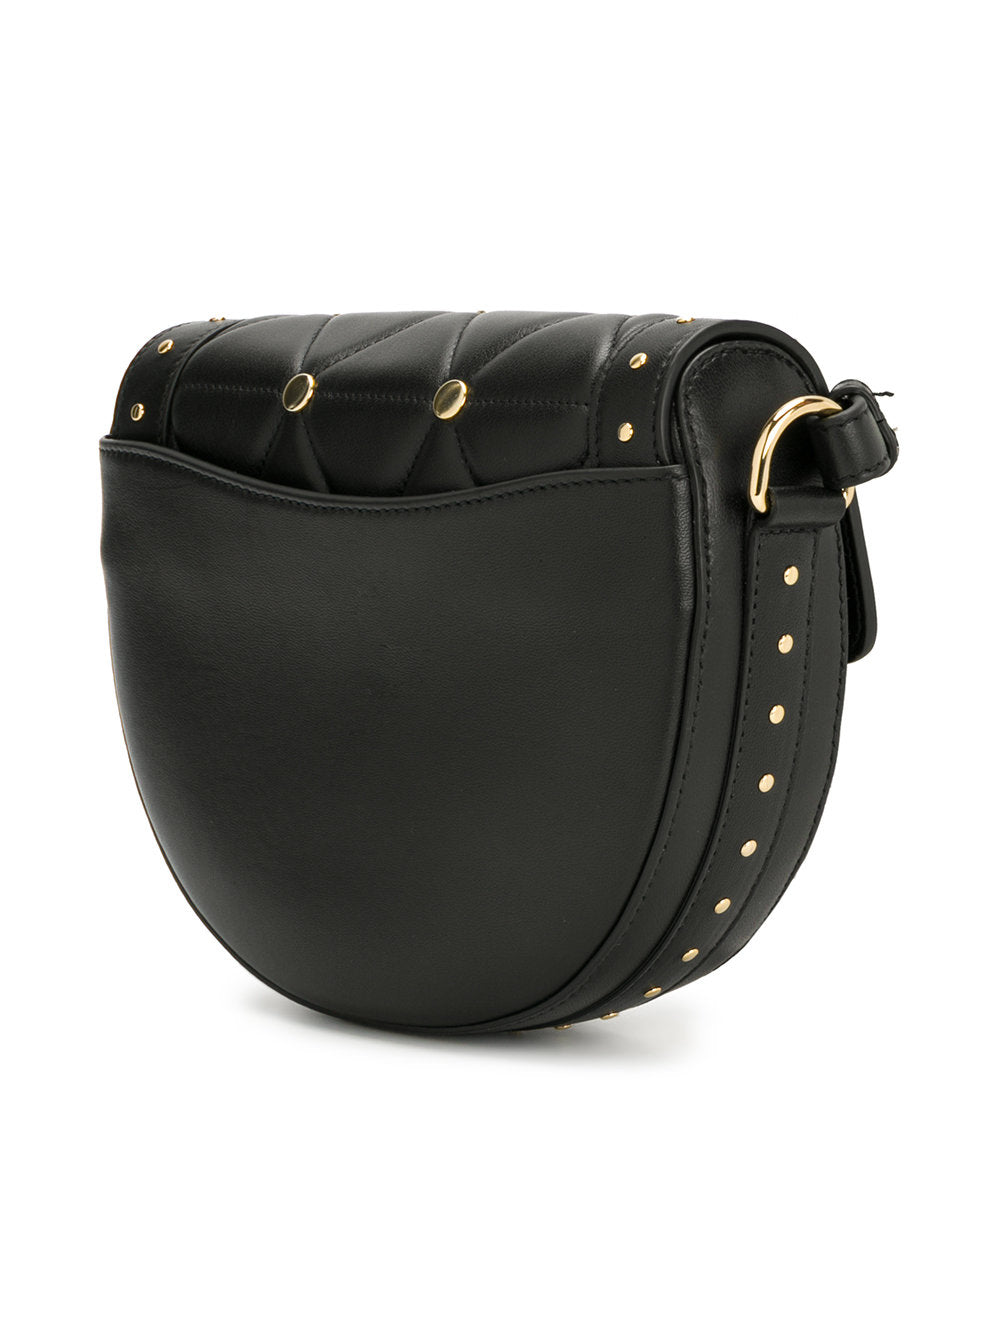 Embellished Shoulder Bag | W7MSM021902R